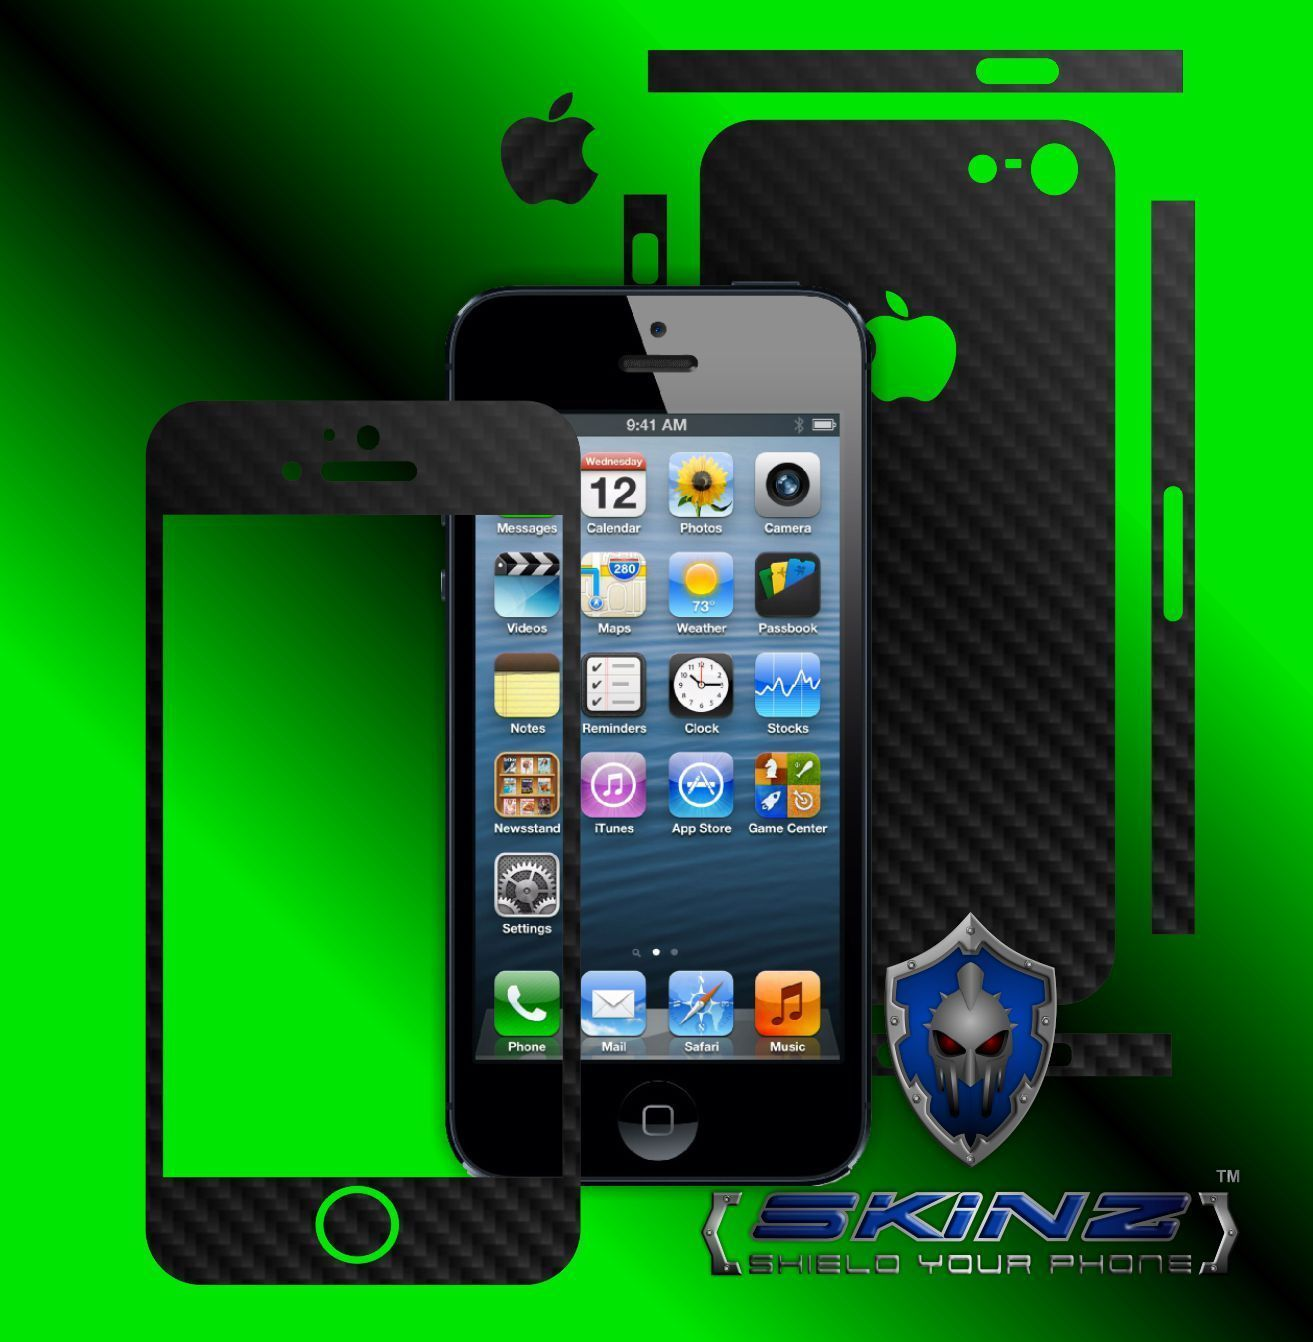 Apple iPhone 5 - Carbon Skin, Full Body Case Cover Protector, Decal Wrap